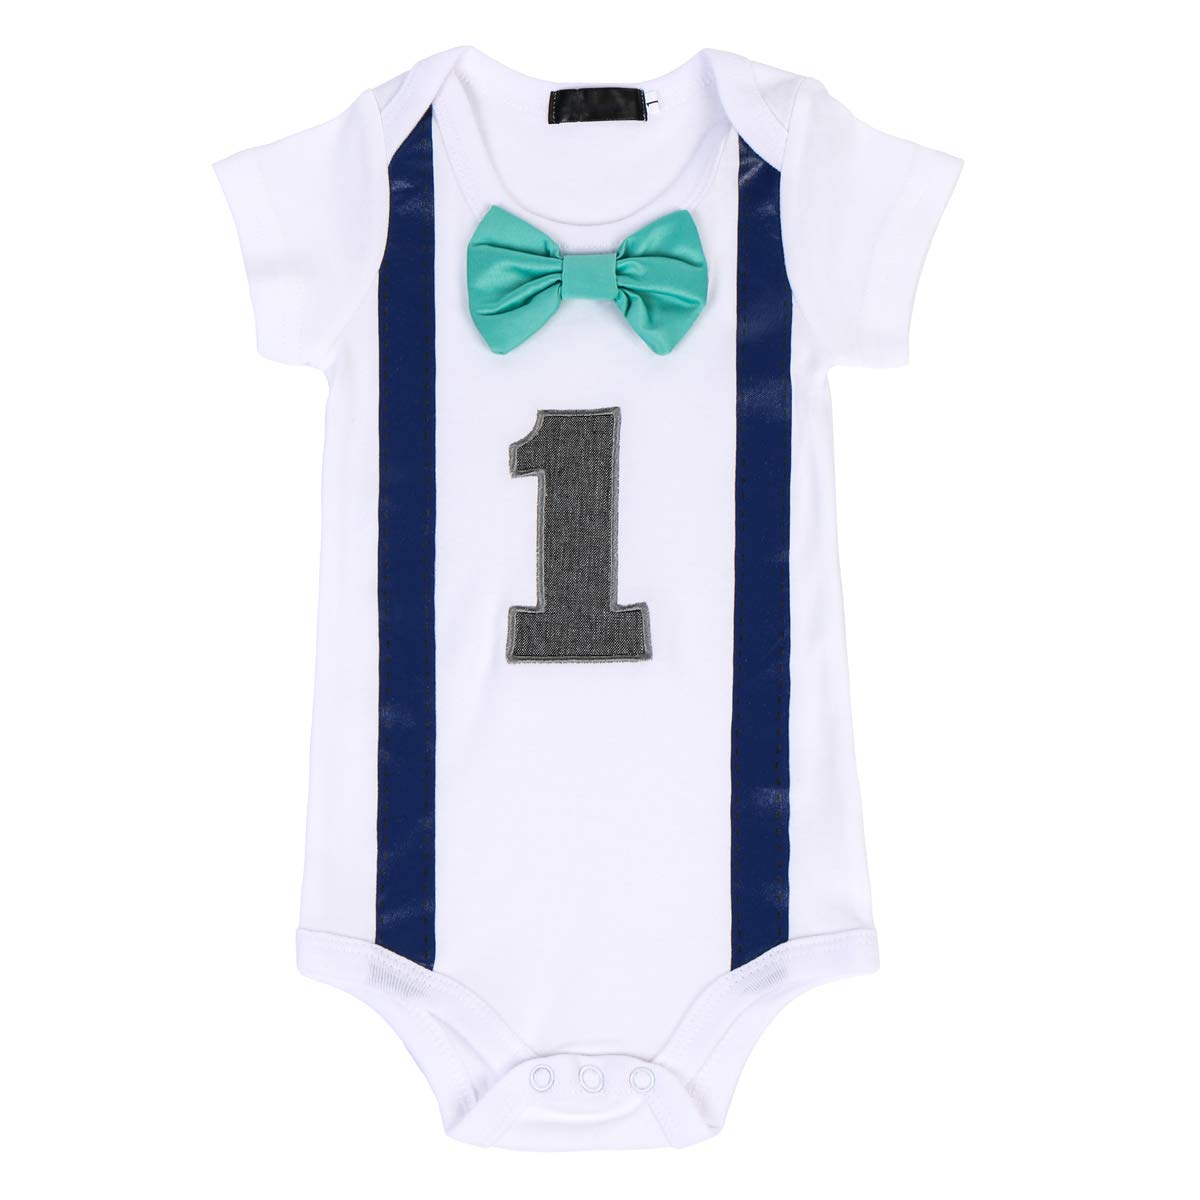 FYMNSI Infant Baby Boy 1st First Birthday Outfit Gentlemen Romper Short Sleeve Bow Tie Bodysuit Playsuit One-Piece Jumpsuit One Year Old Cake Smash Outfit Wedding Party Suit Photography Photo Props